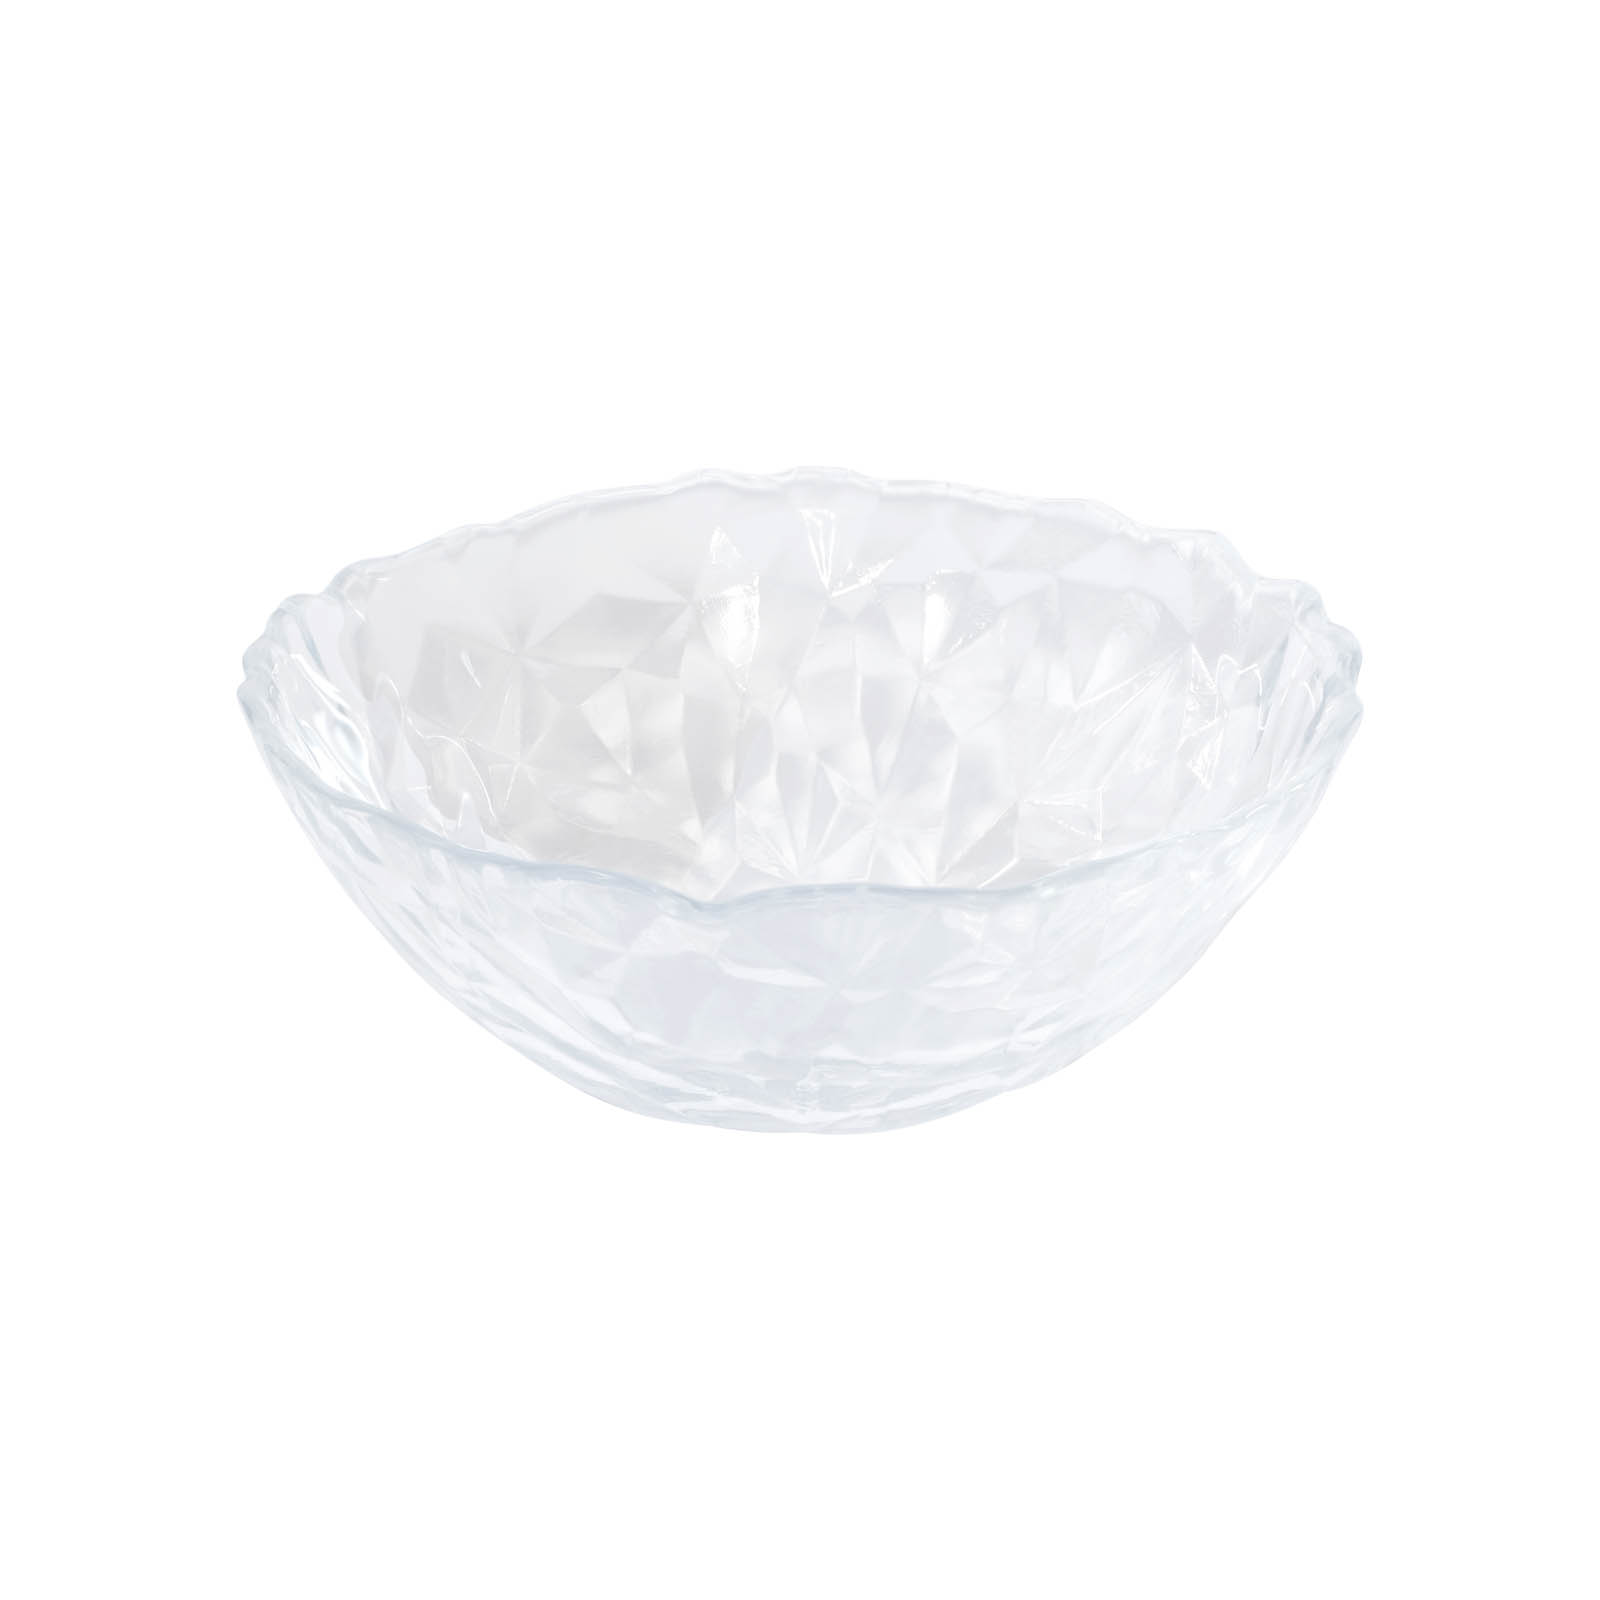 Topaz Clear Luster Individual Bowl, 6.5 inch Diameter